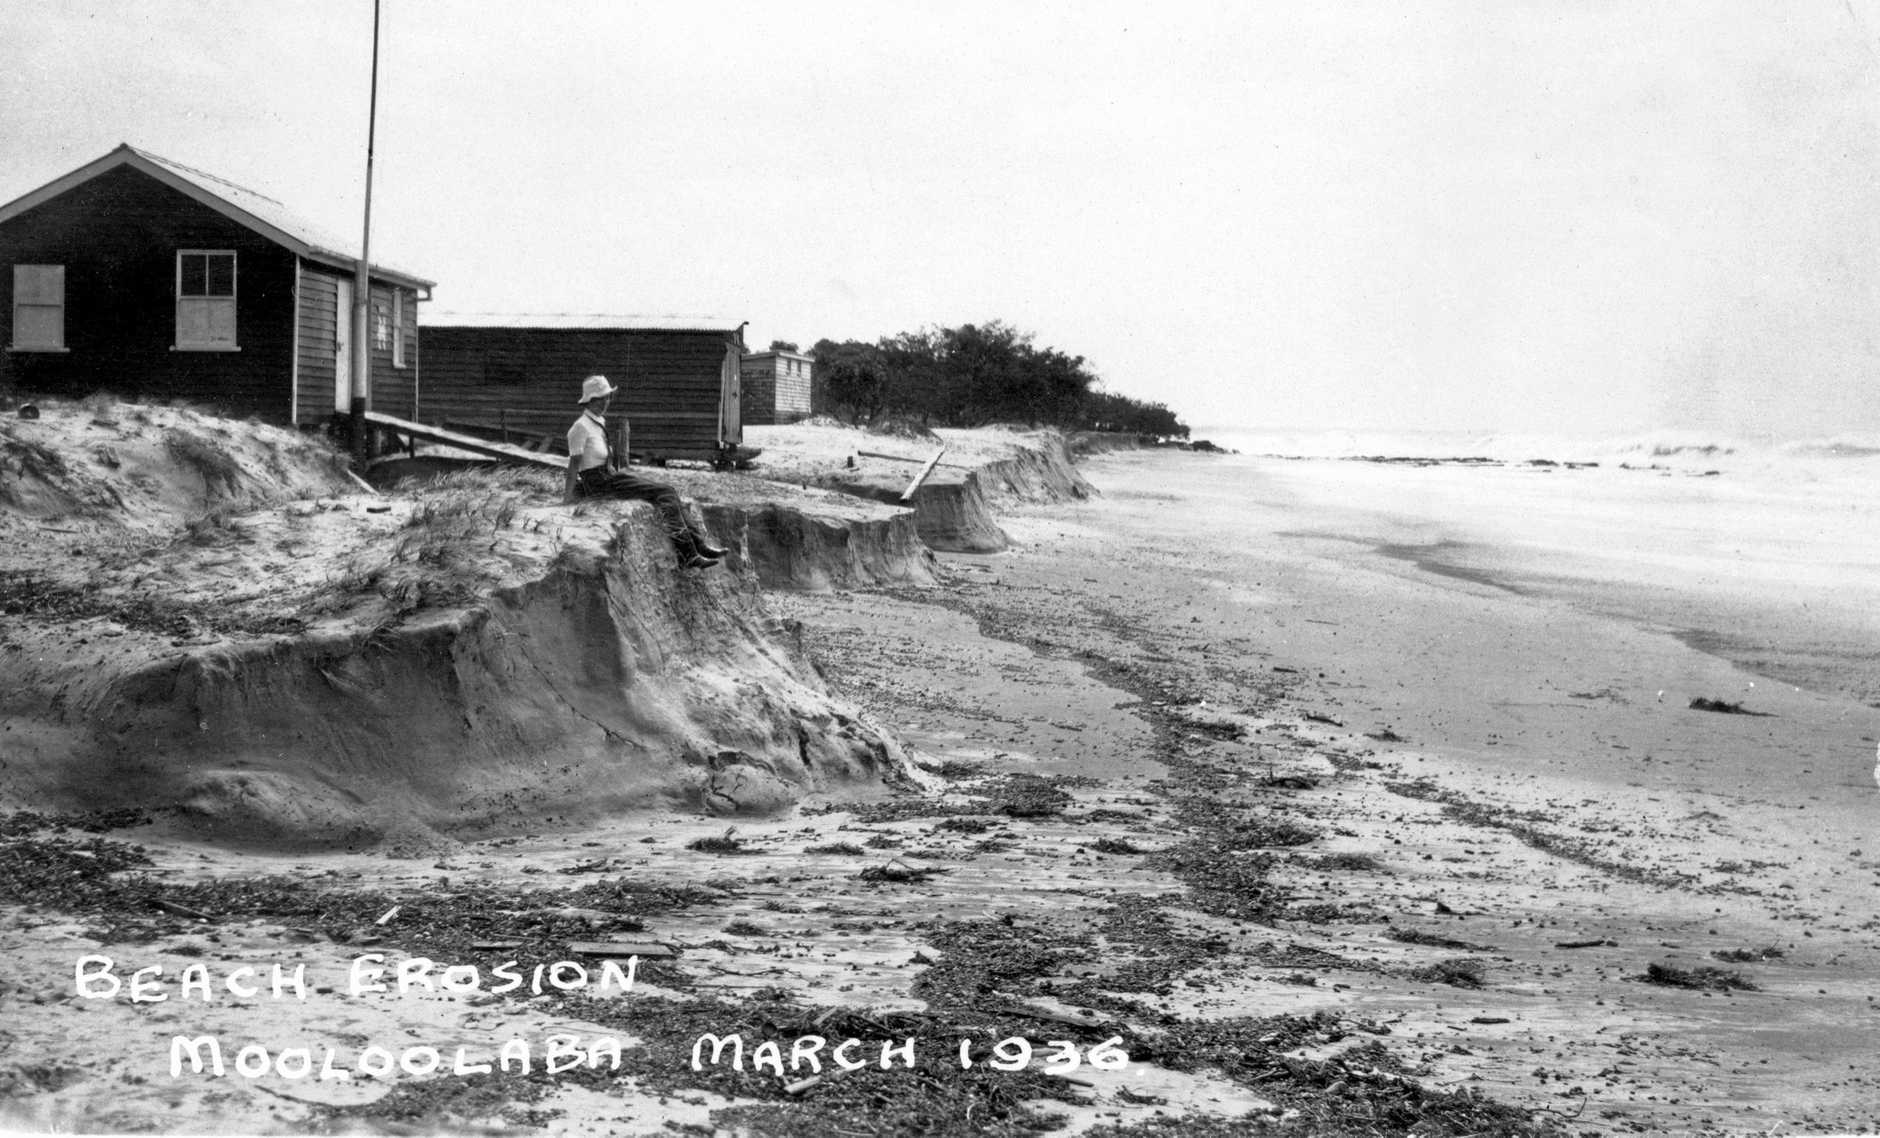 MOTHER NATURE'S FURY: Beach erosion due to cyclonic conditions near the Mooloolaba Life Saving Club buildings, Mooloolaba Beach, in March 1936.